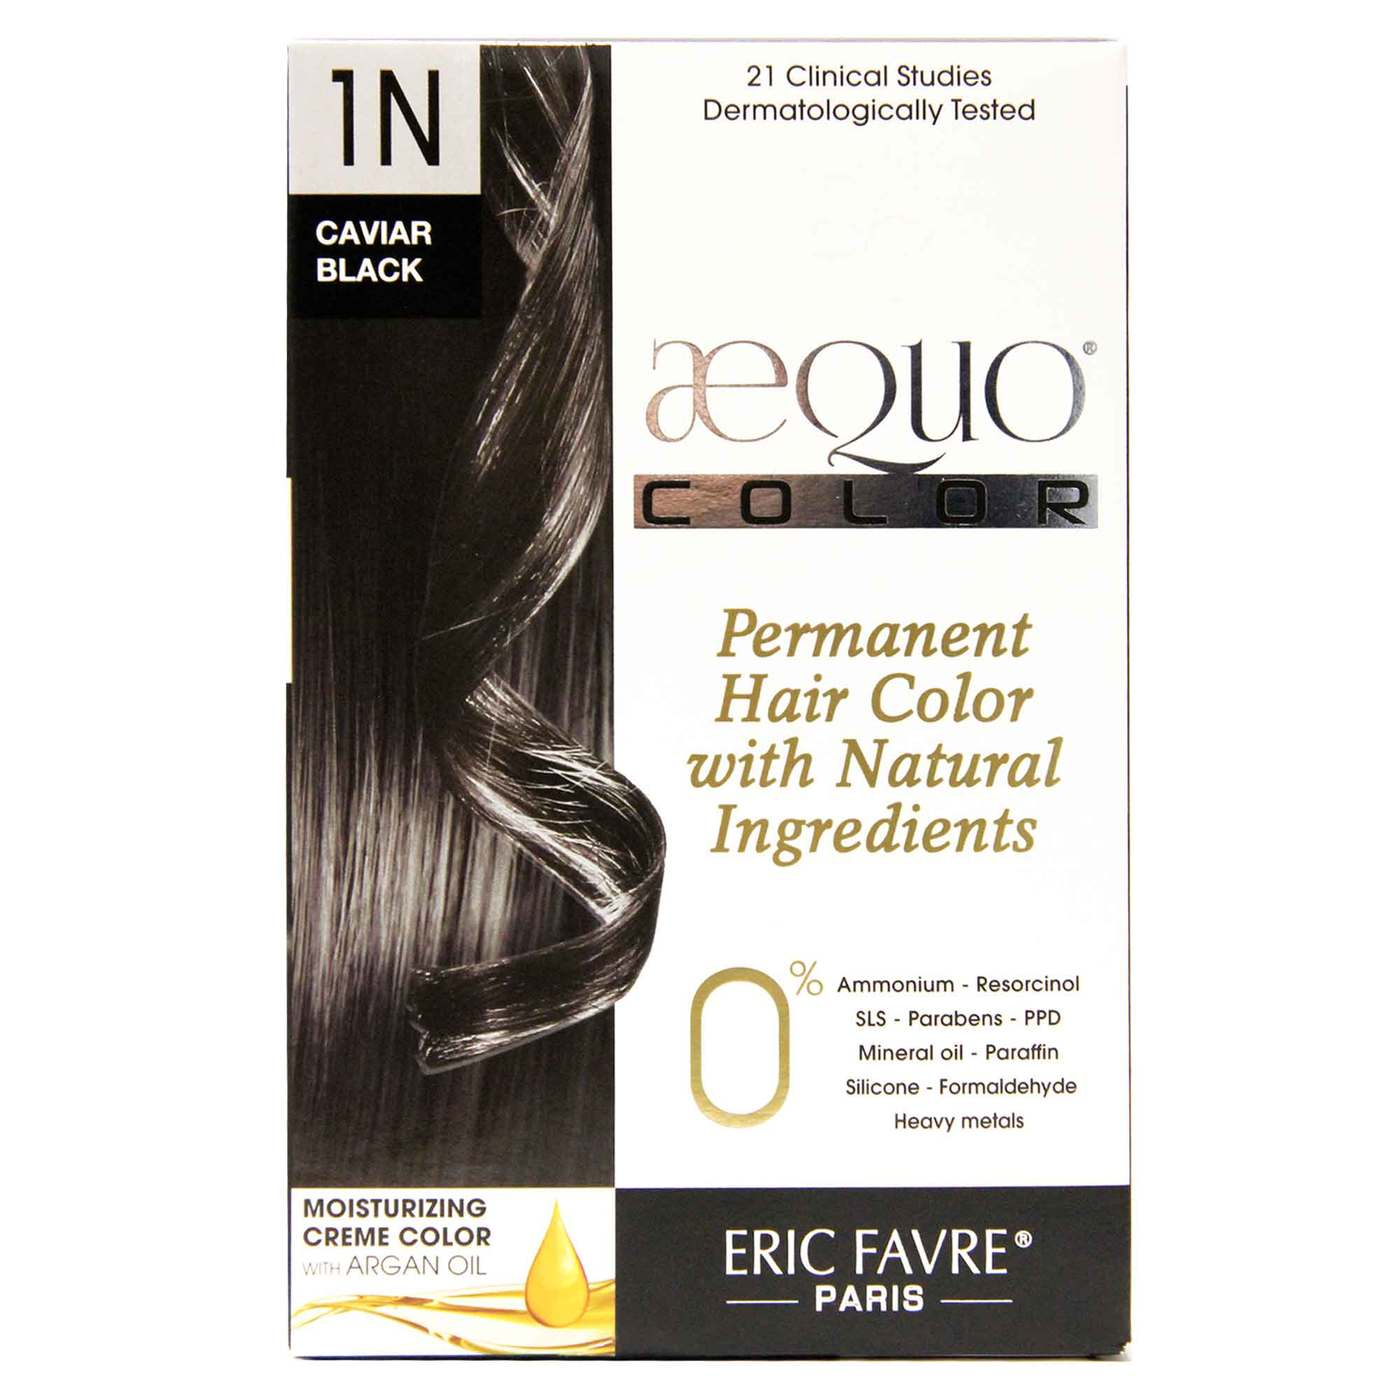 Aequo Color Cream Natural Hair Color Black 1n Caviar One